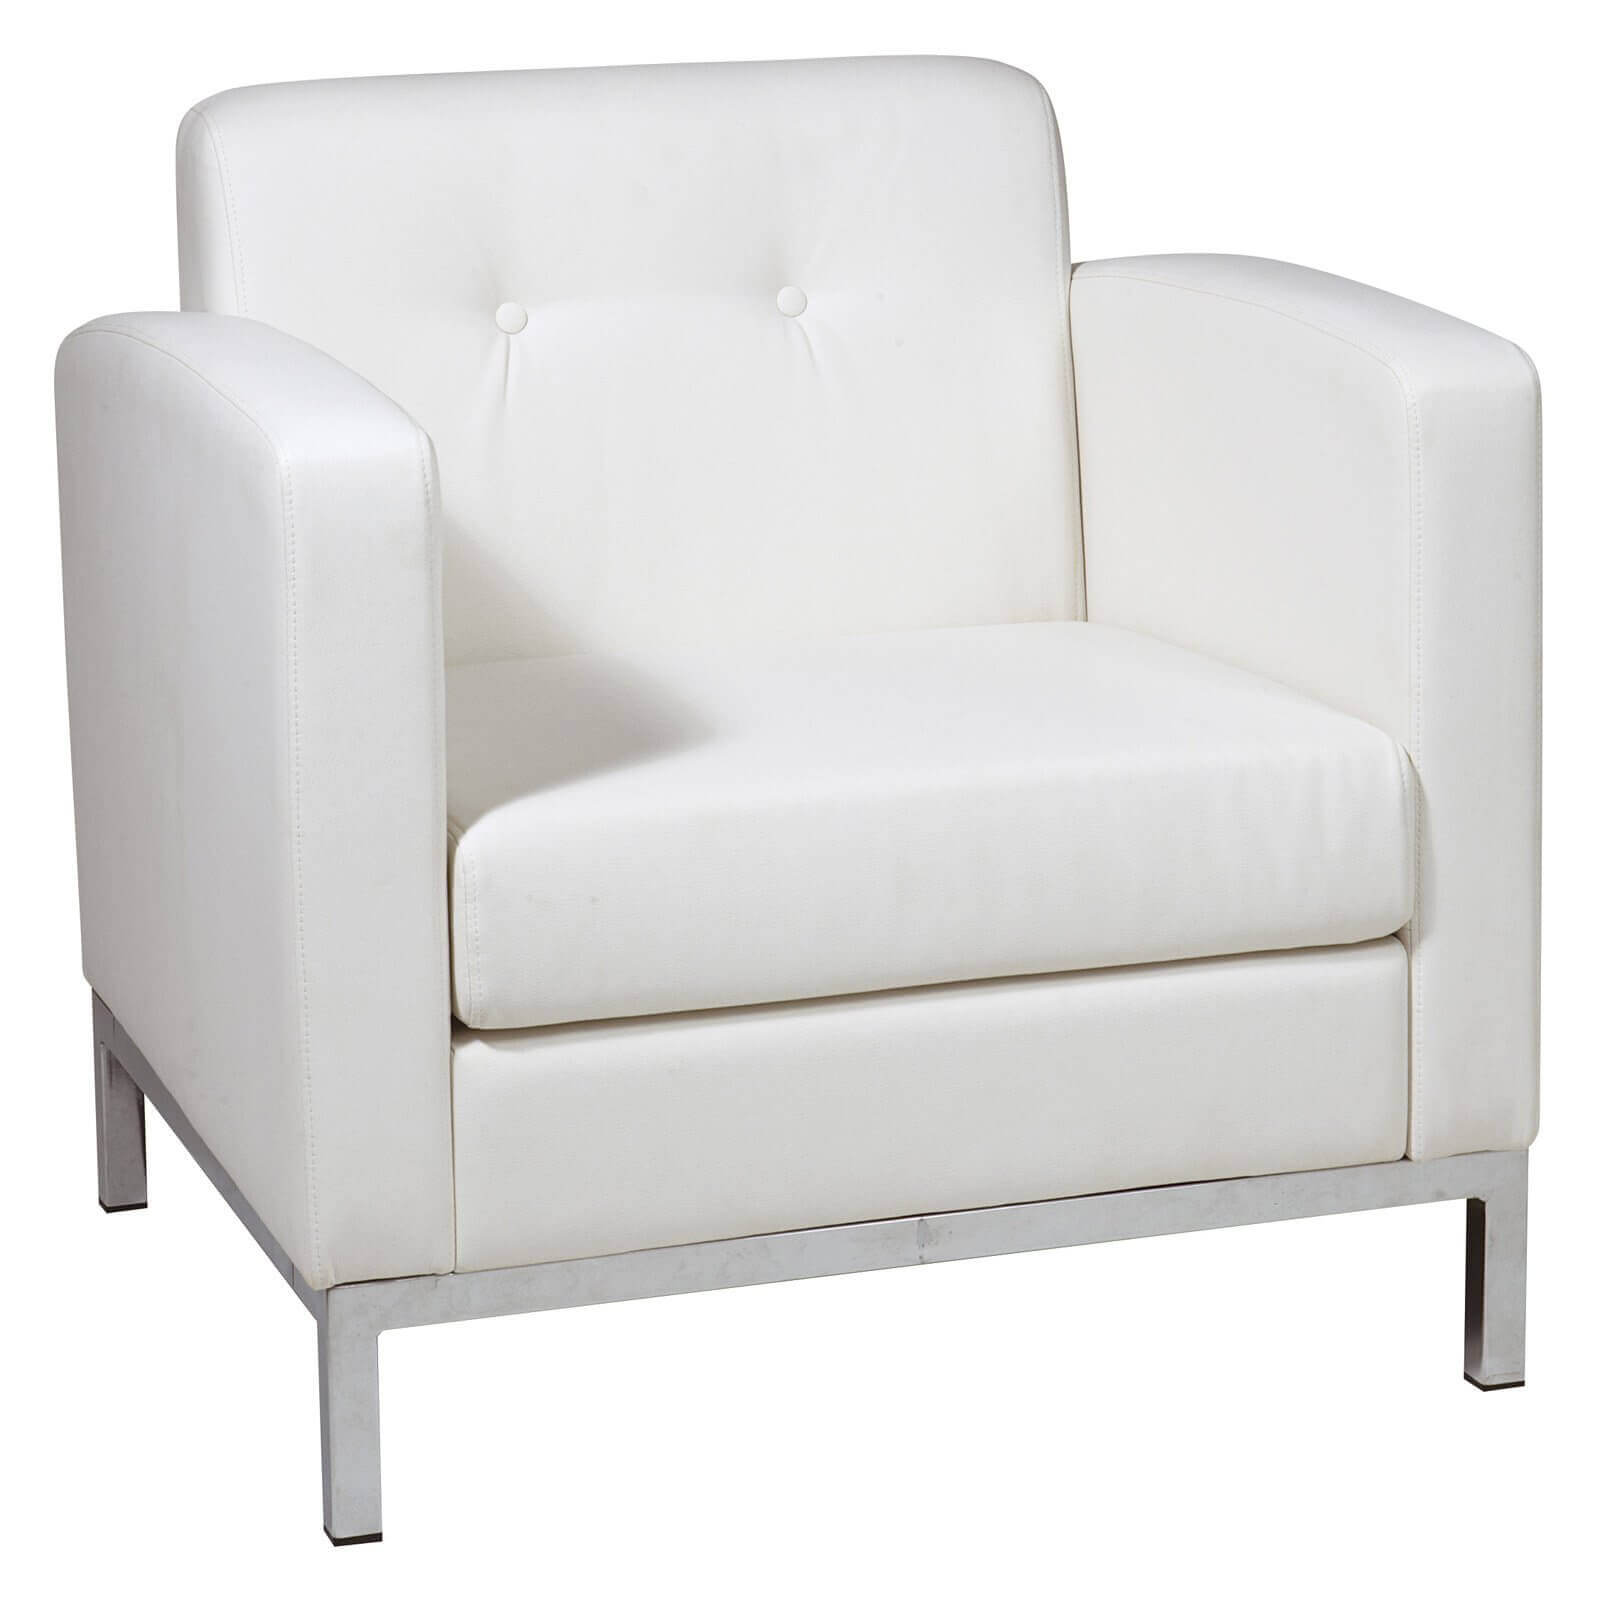 Homesense Accent Chairs 37 White Modern Accent Chairs For The Living Room